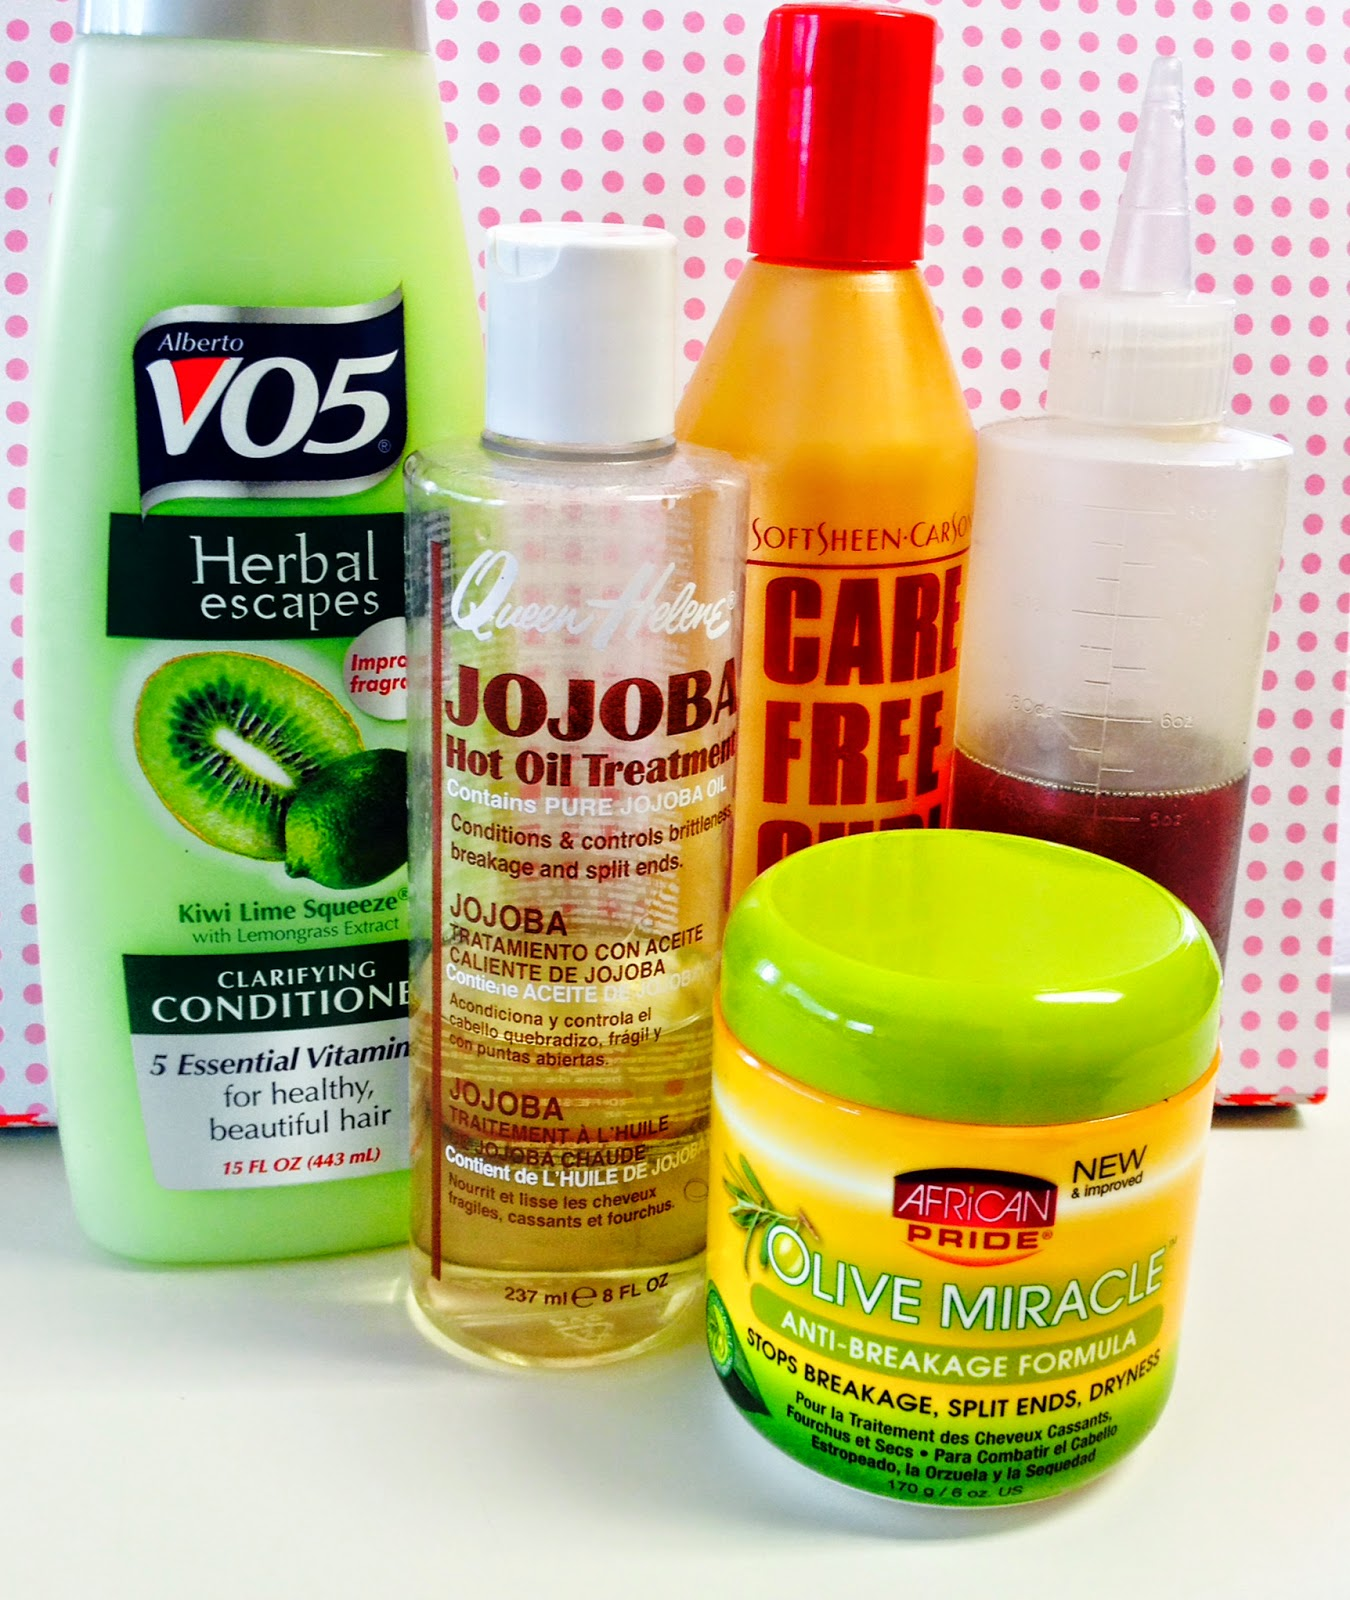 Co-Washing My Hair With Alberto V05 Herbal Escape Clarifying Conditioner